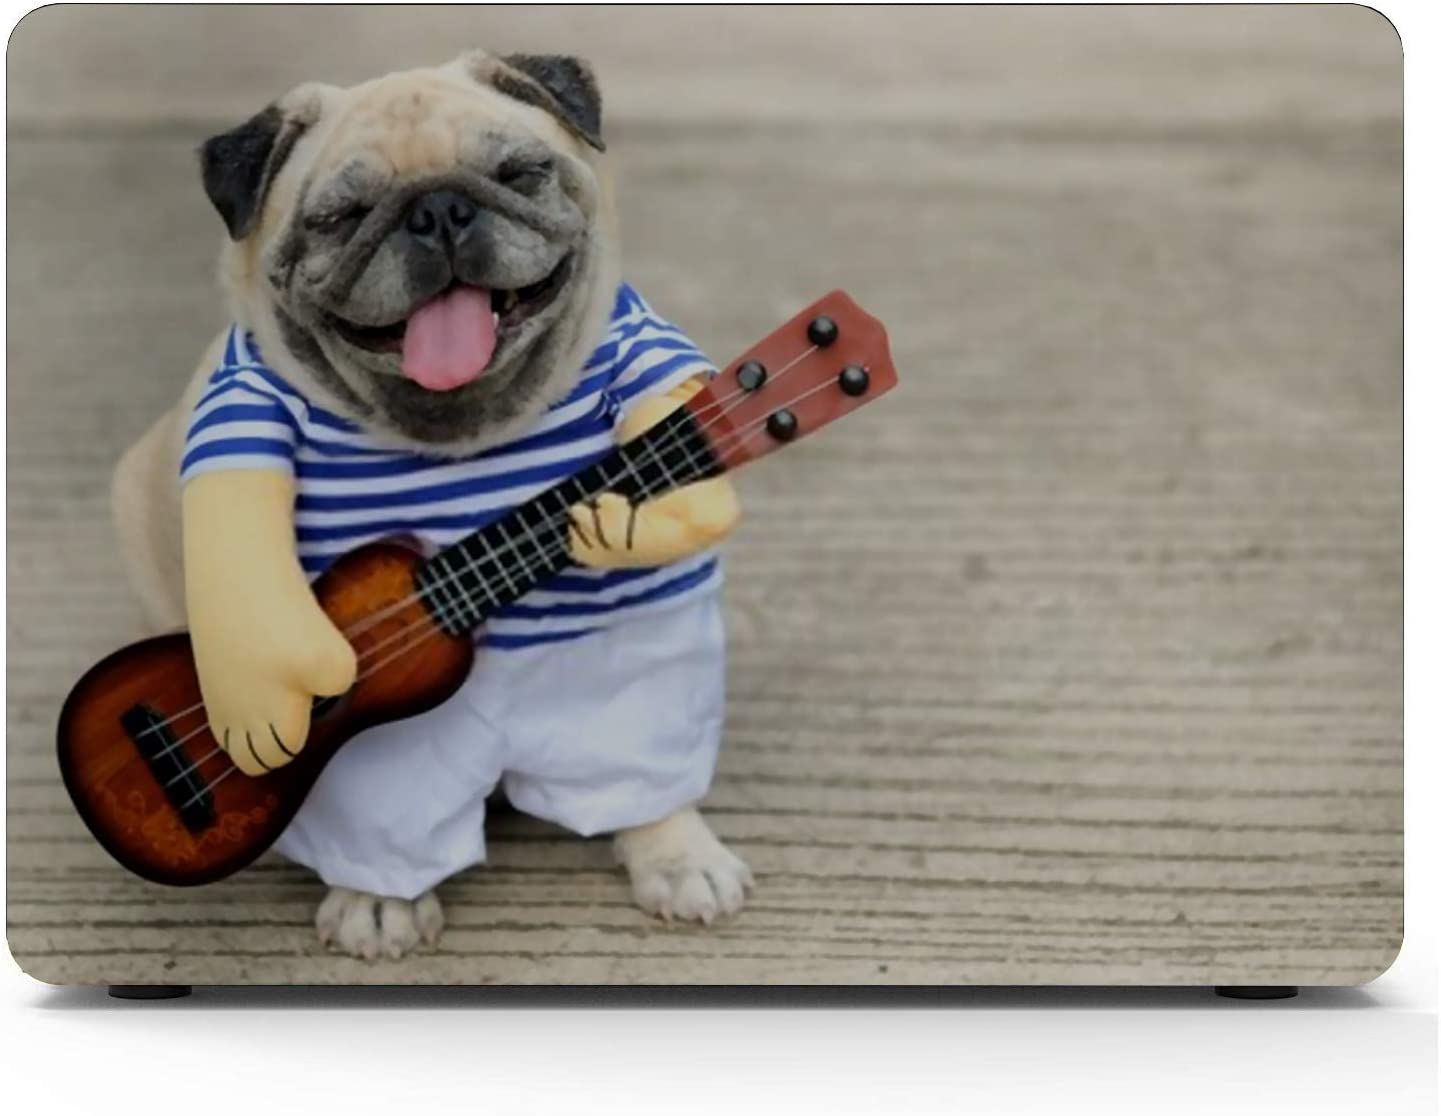 MacBook Pro Case Indy Musician Guitarist Pug Dogfunny Dog MacBook Air 11 //A1370//A1465Plastic Case Keyboard Cover /& Screen Protector /& Keyboard Clean